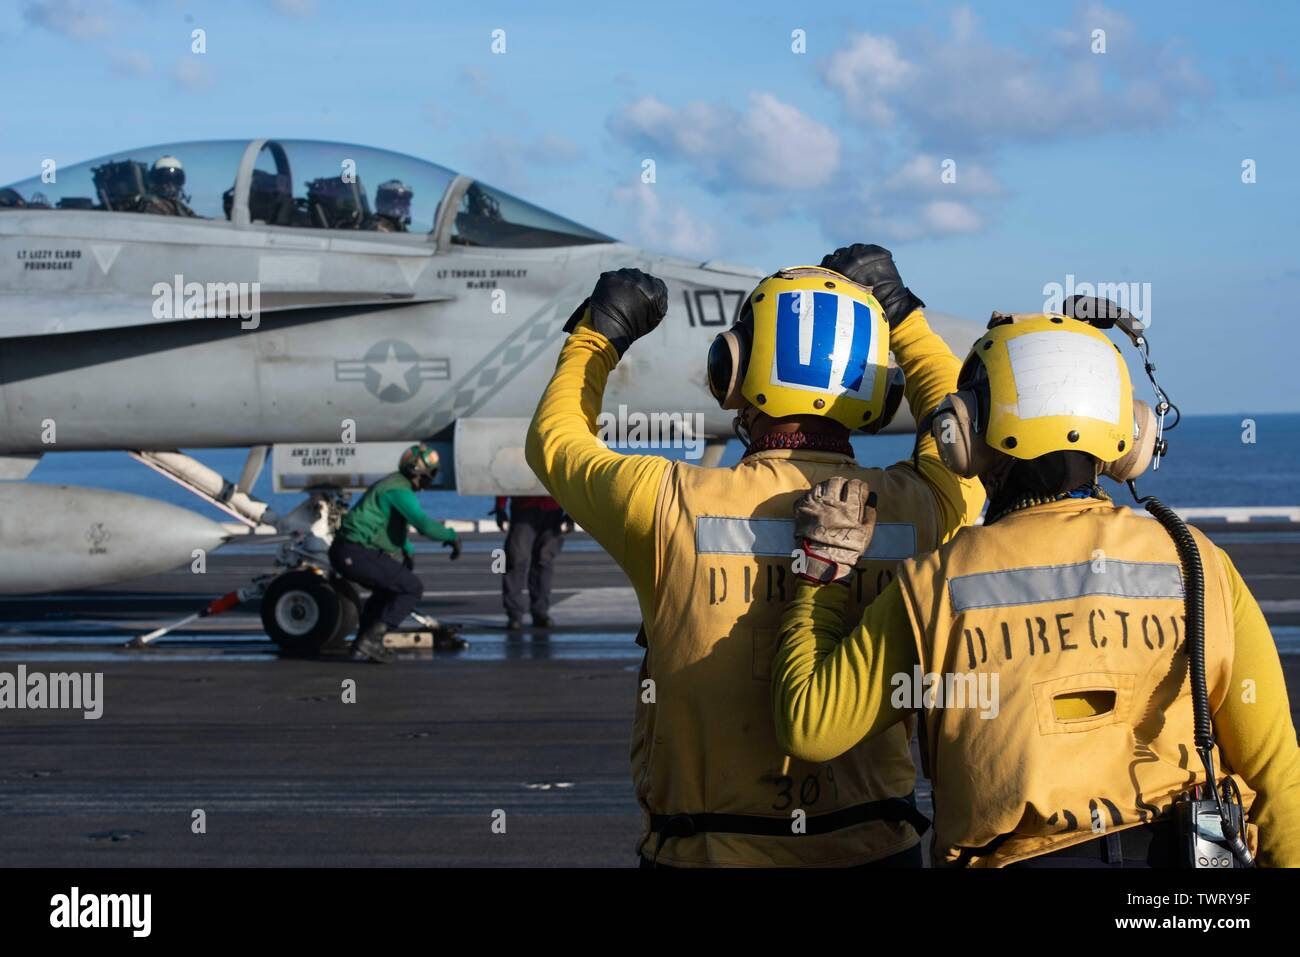 190620-N-CL027-2194  SOUTH CHINA SEA (June 20, 2019) Sailors direct the launch of an F/A-18F Super Hornet from Strike Fighter Squadron (VFA) 102 on the flight deck aboard the Navy's forward-deployed aircraft carrier USS Ronald Reagan (CVN 76) during flight operations. Ronald Reagan, the flagship of Carrier Strike Group 5, provides a combat-ready force that protects and defends the collective maritime interests of its allies and partners in the Indo-Pacific region. (U.S. Navy photo by Mass Communication Specialist 2nd Class Janweb B. Lagazo/Released) - Stock Image